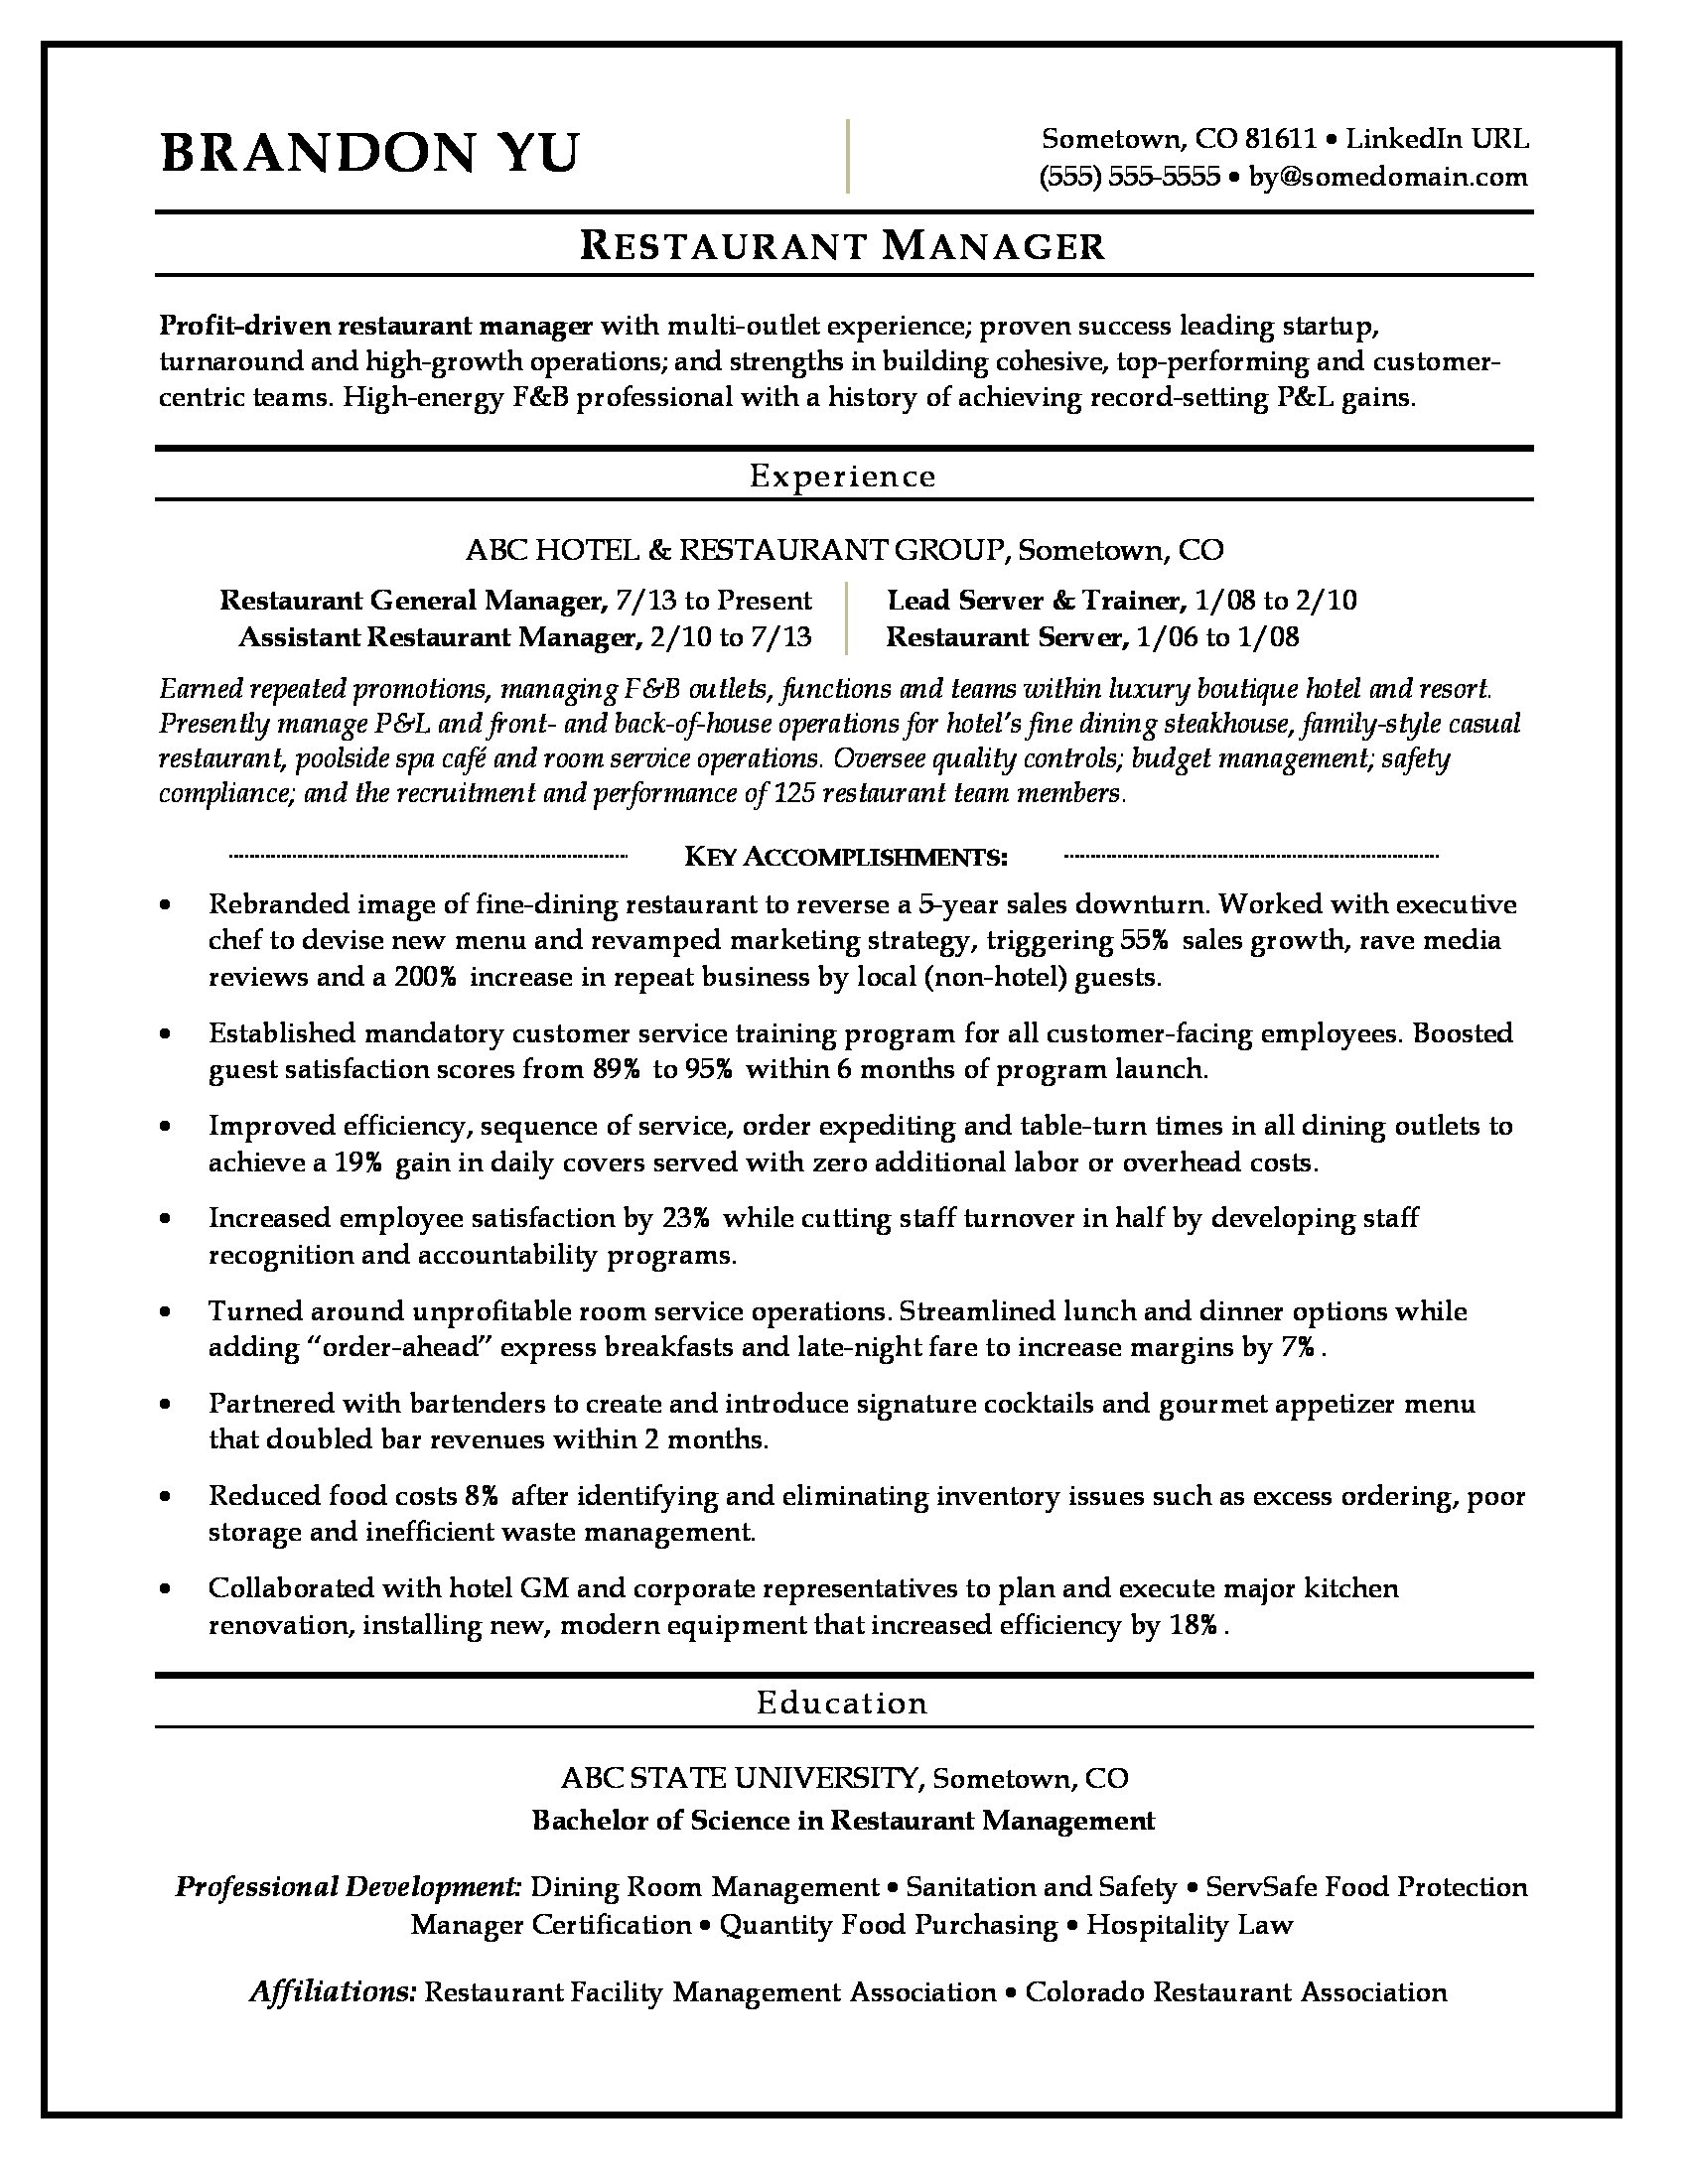 Sample Resume For A Restaurant Manager  Resume For Restaurant